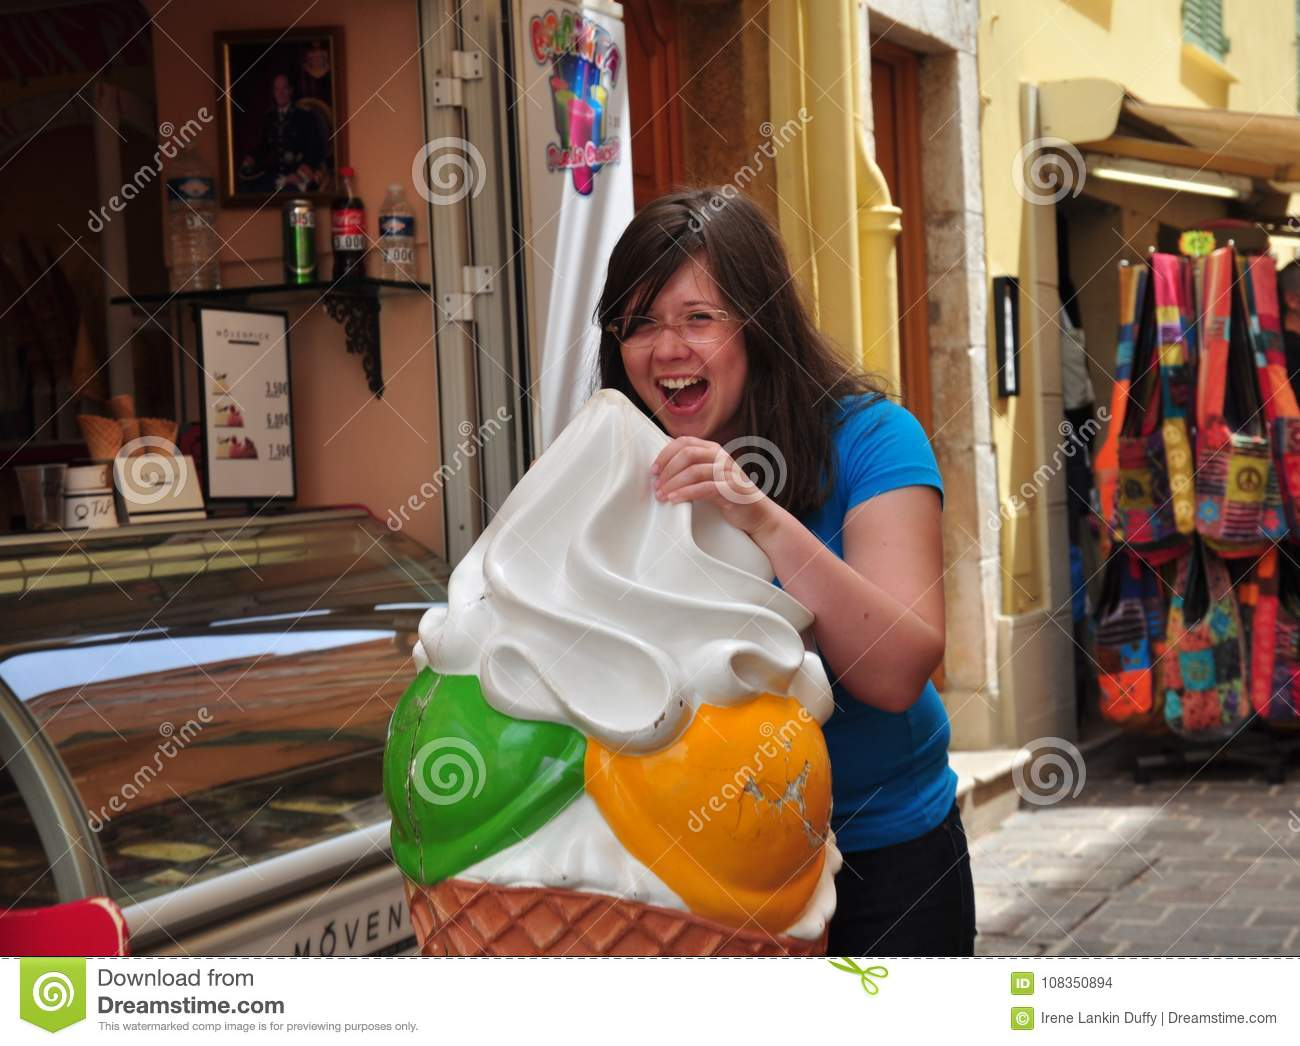 Download Street Portrait Of A Girl Eating Ice Cream Stock Photo - Image of unique, girl: 108350894